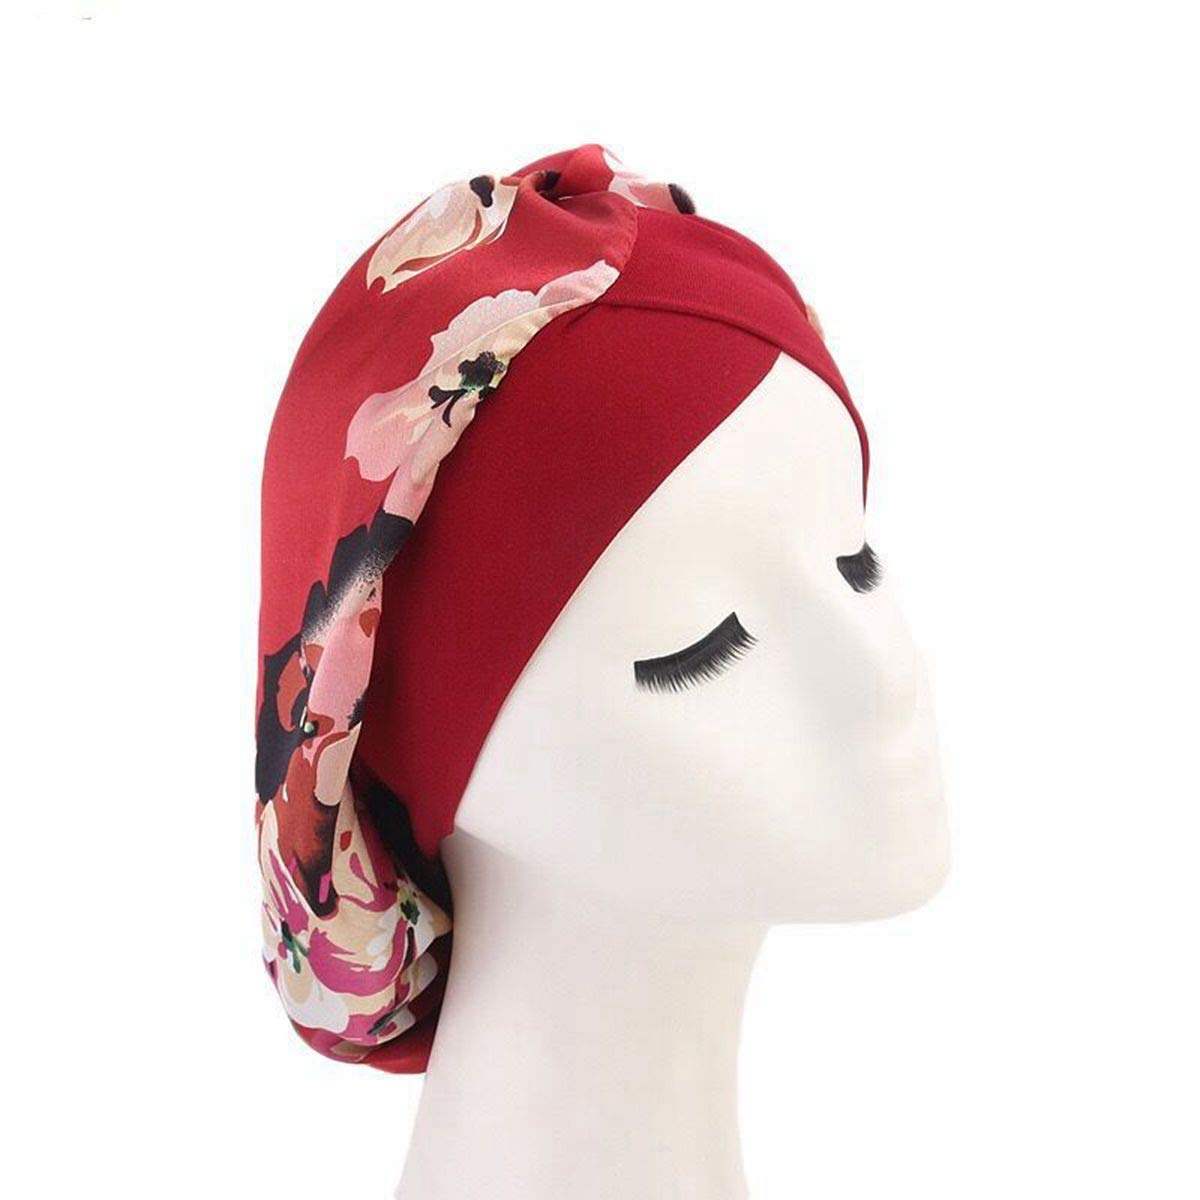 Women Satin Lined Sleep Bonnet Hair Cap Sleeping Slouchy Hat Slap Headwear for Curly Frizzy Hair